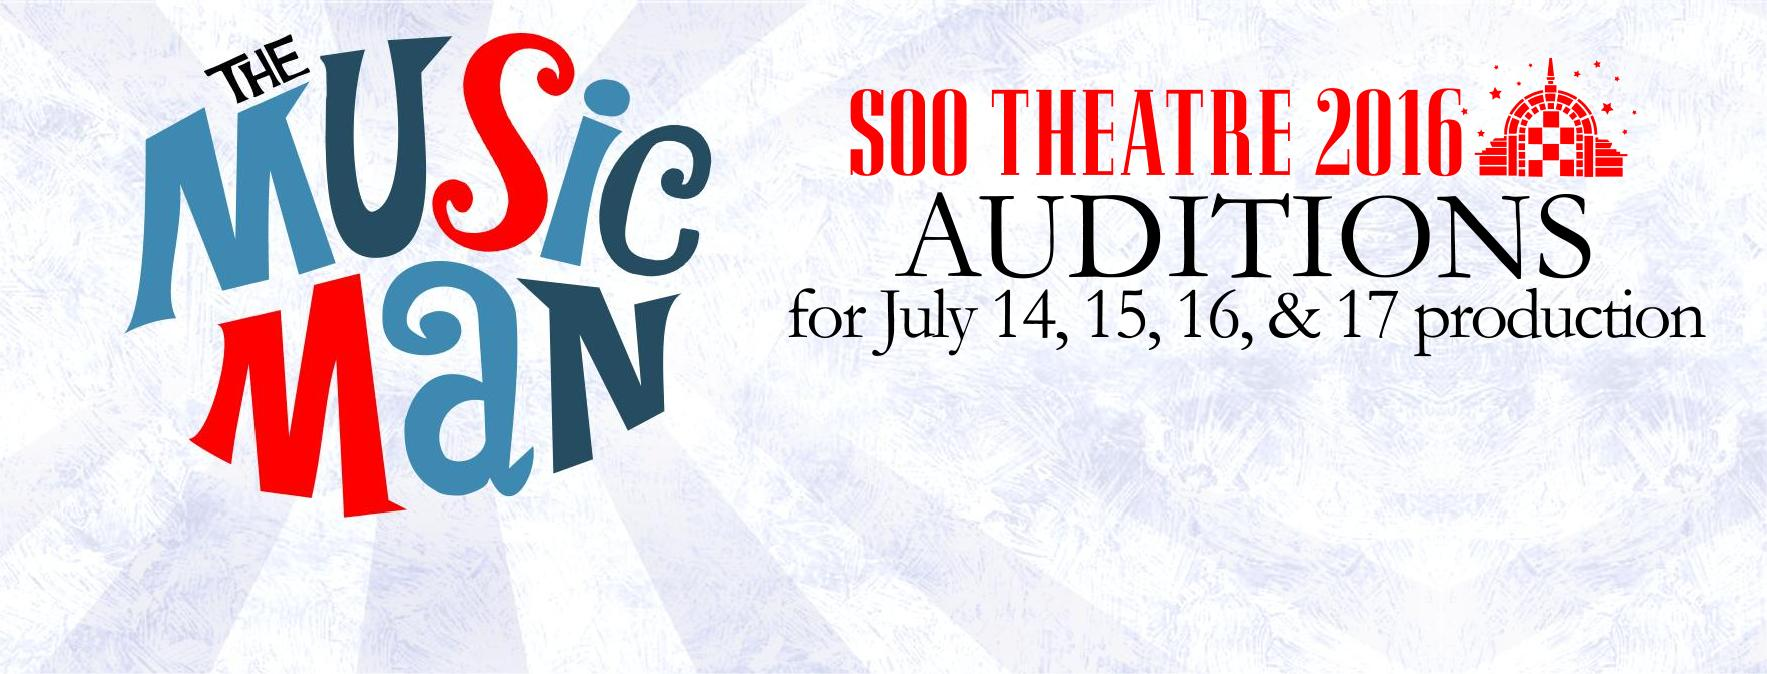 ALTERNATE Music Man logo for AUdition Facebook Event